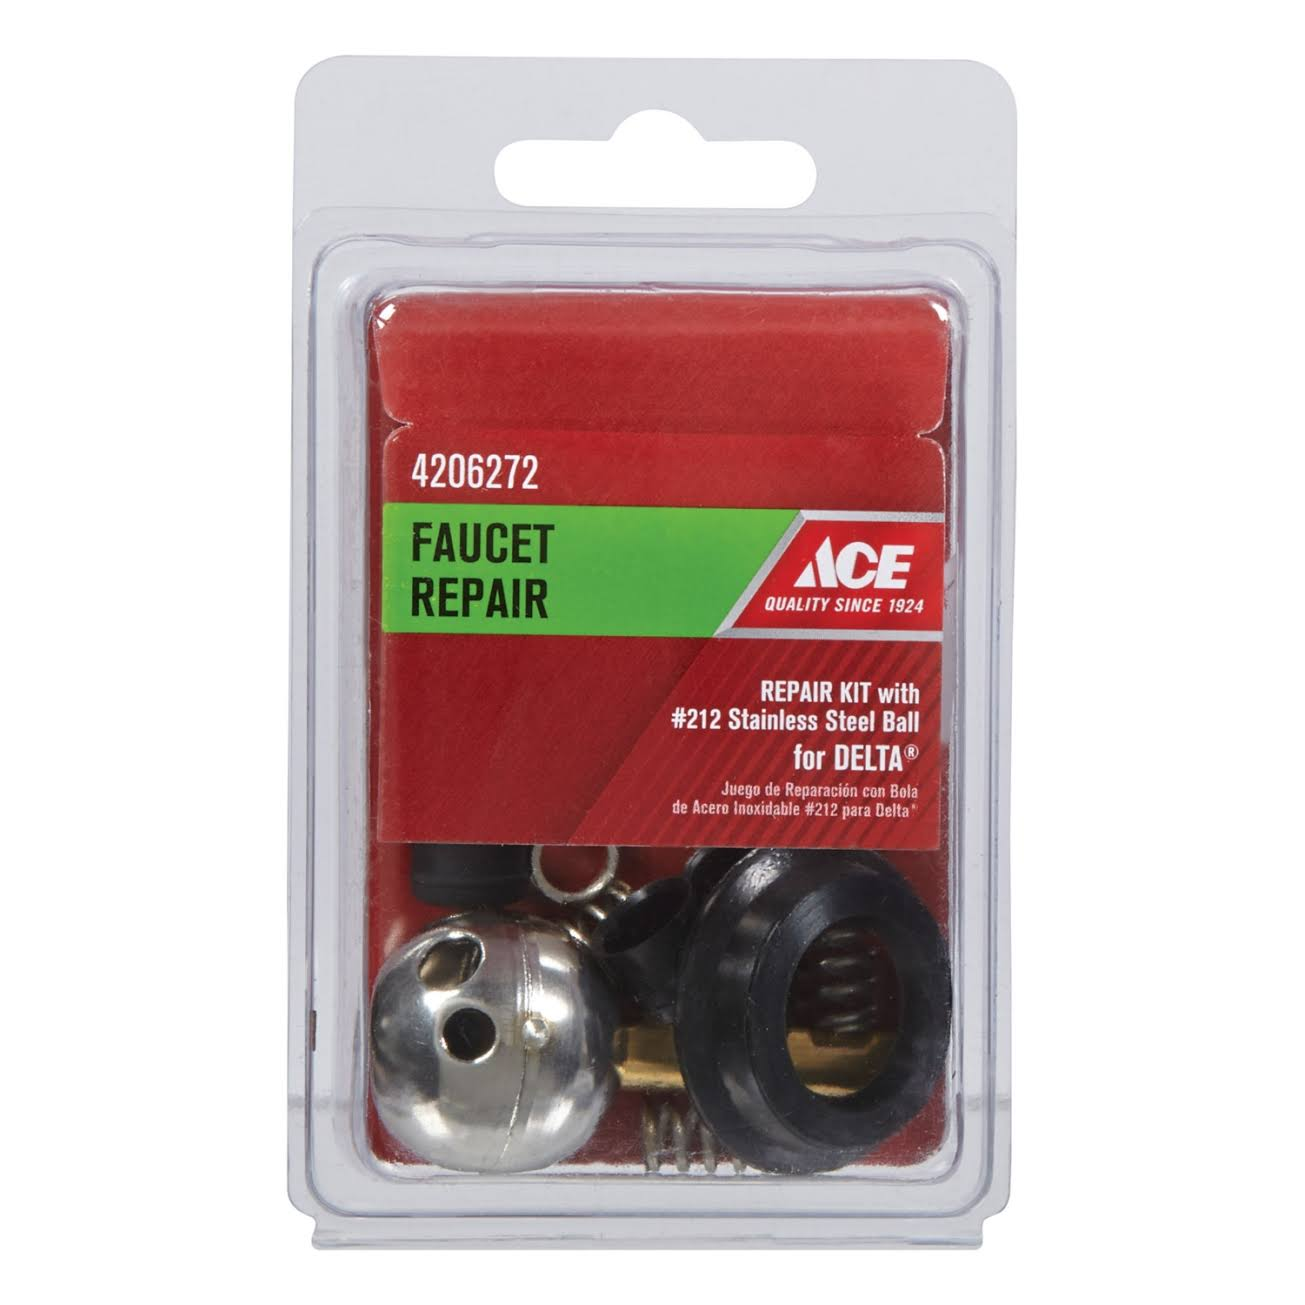 Ace Stainless Steel Repair Kit for Delta Faucets